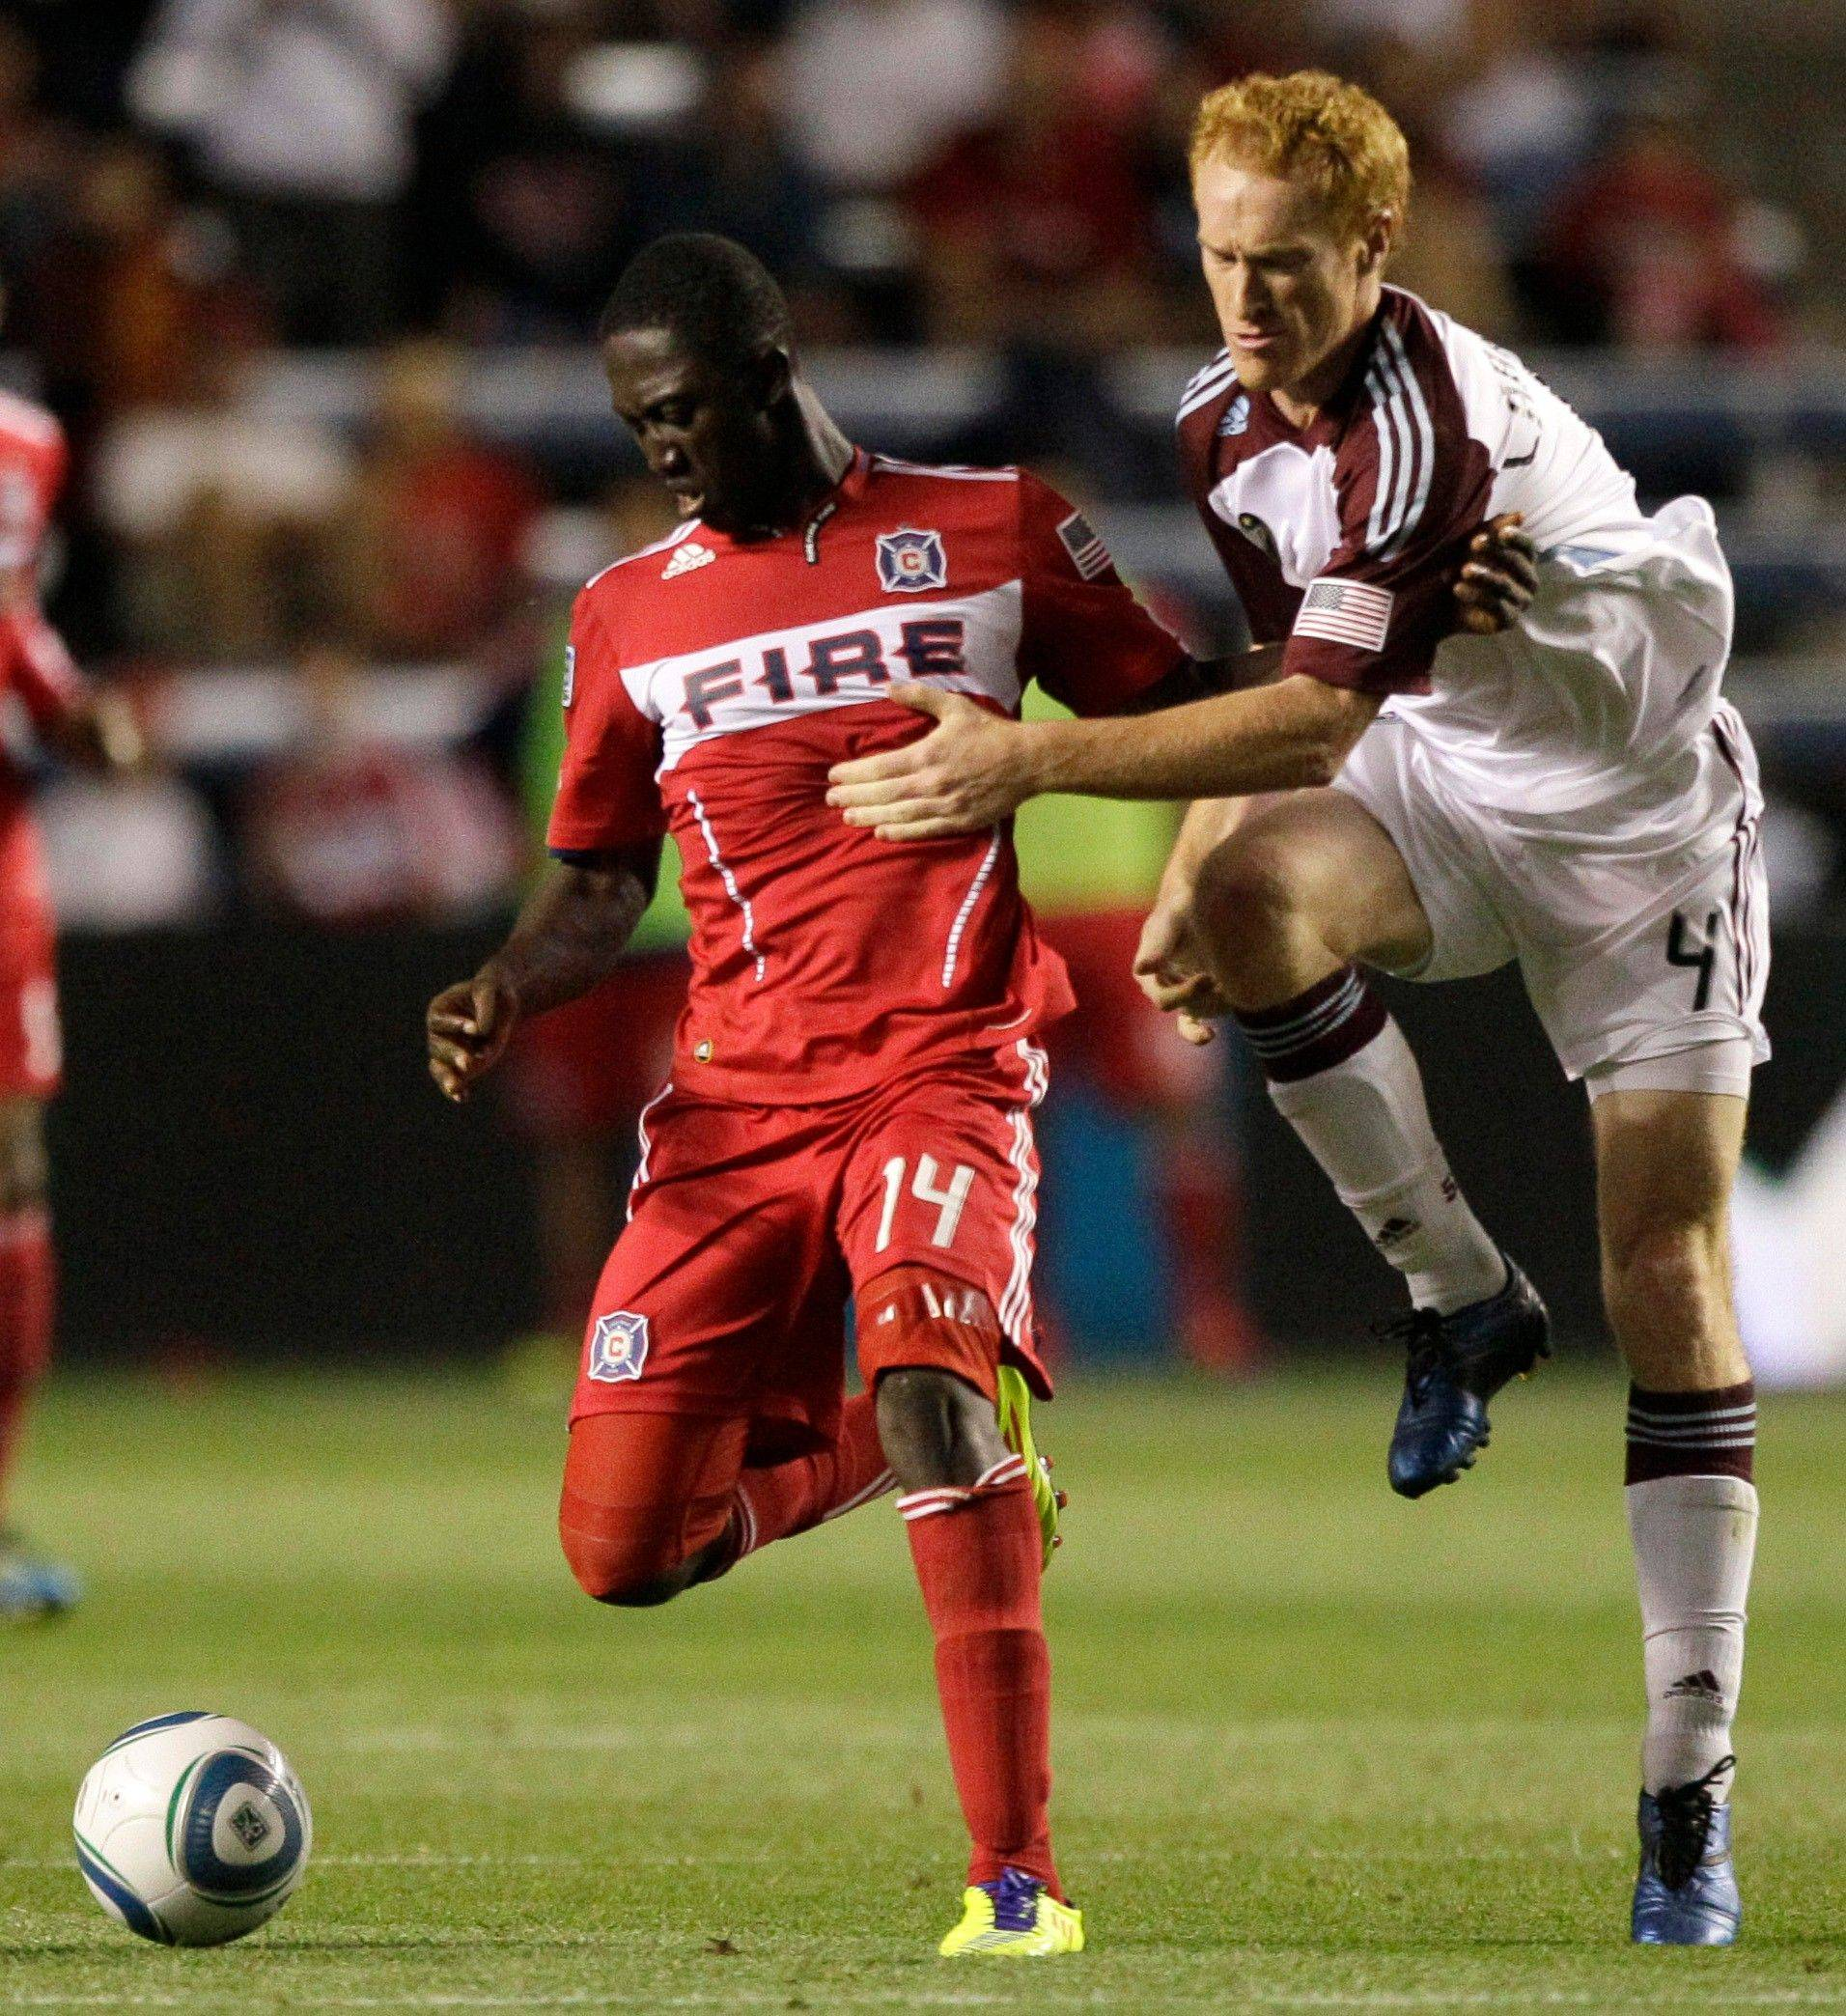 The Fire's Patrick Nyarko controls the ball against the Rapids' Jeff Larentowicz on Saturday.